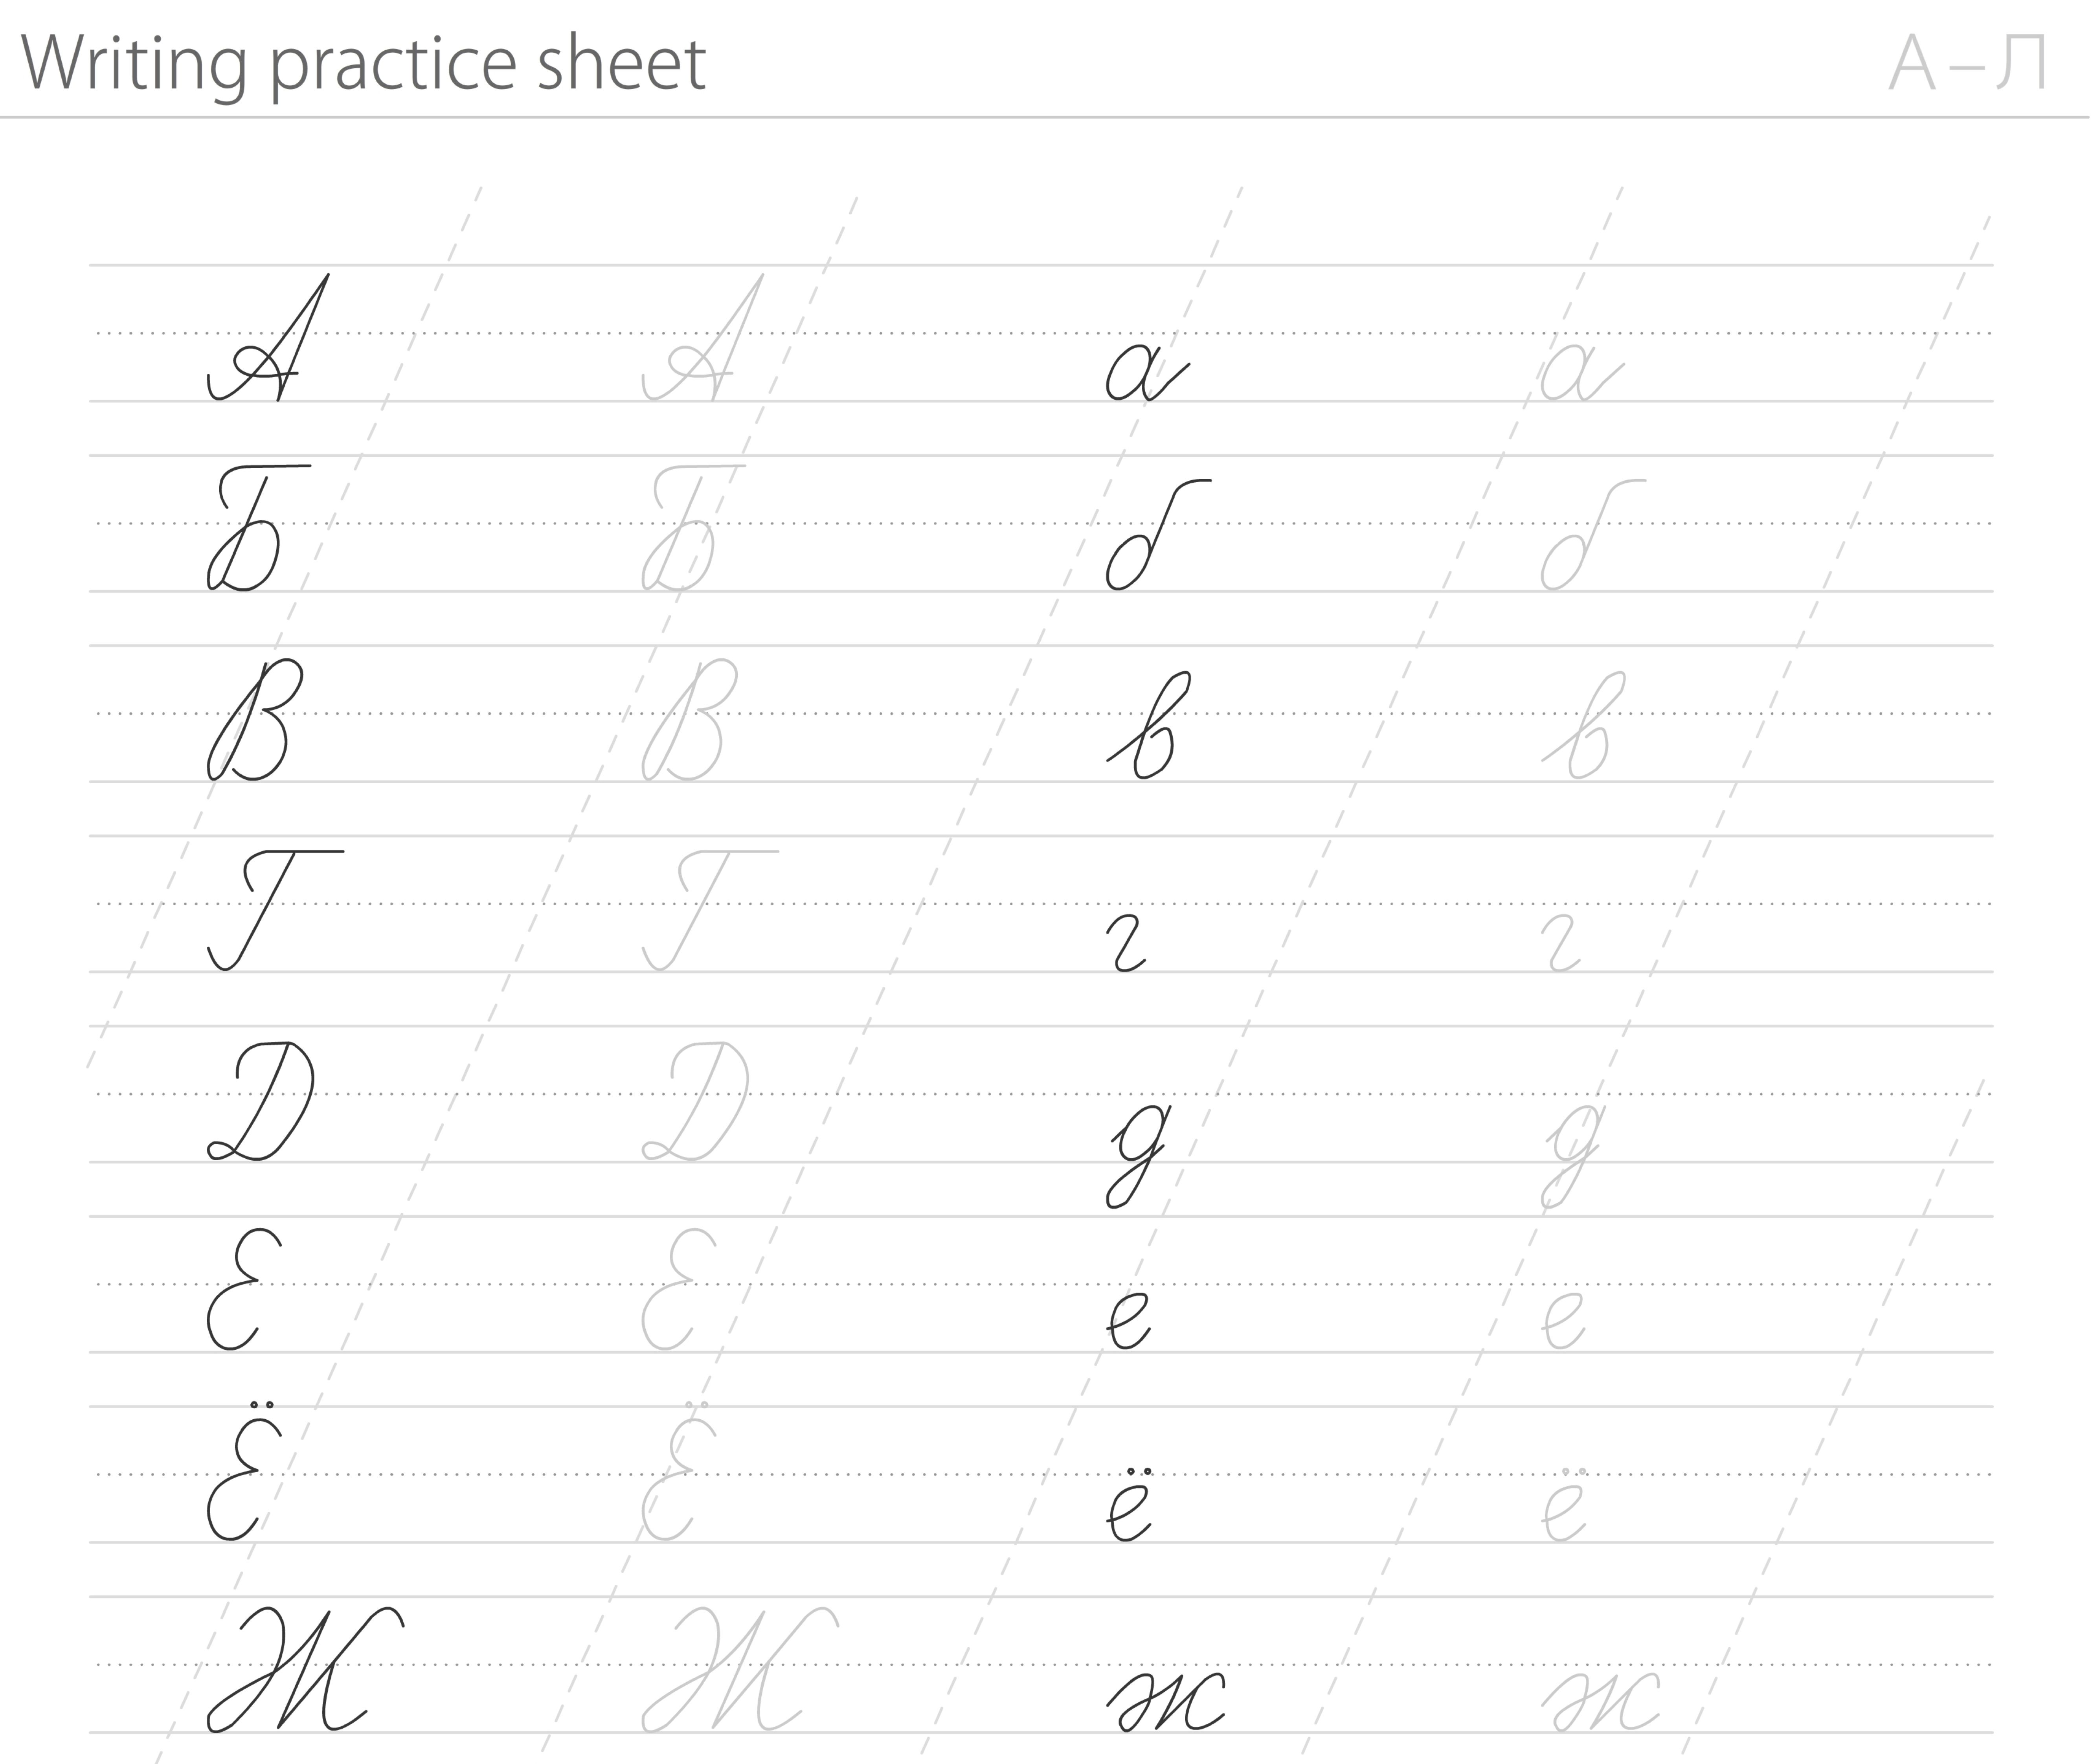 Practice your Russian cursive writing with this FREE downloadable